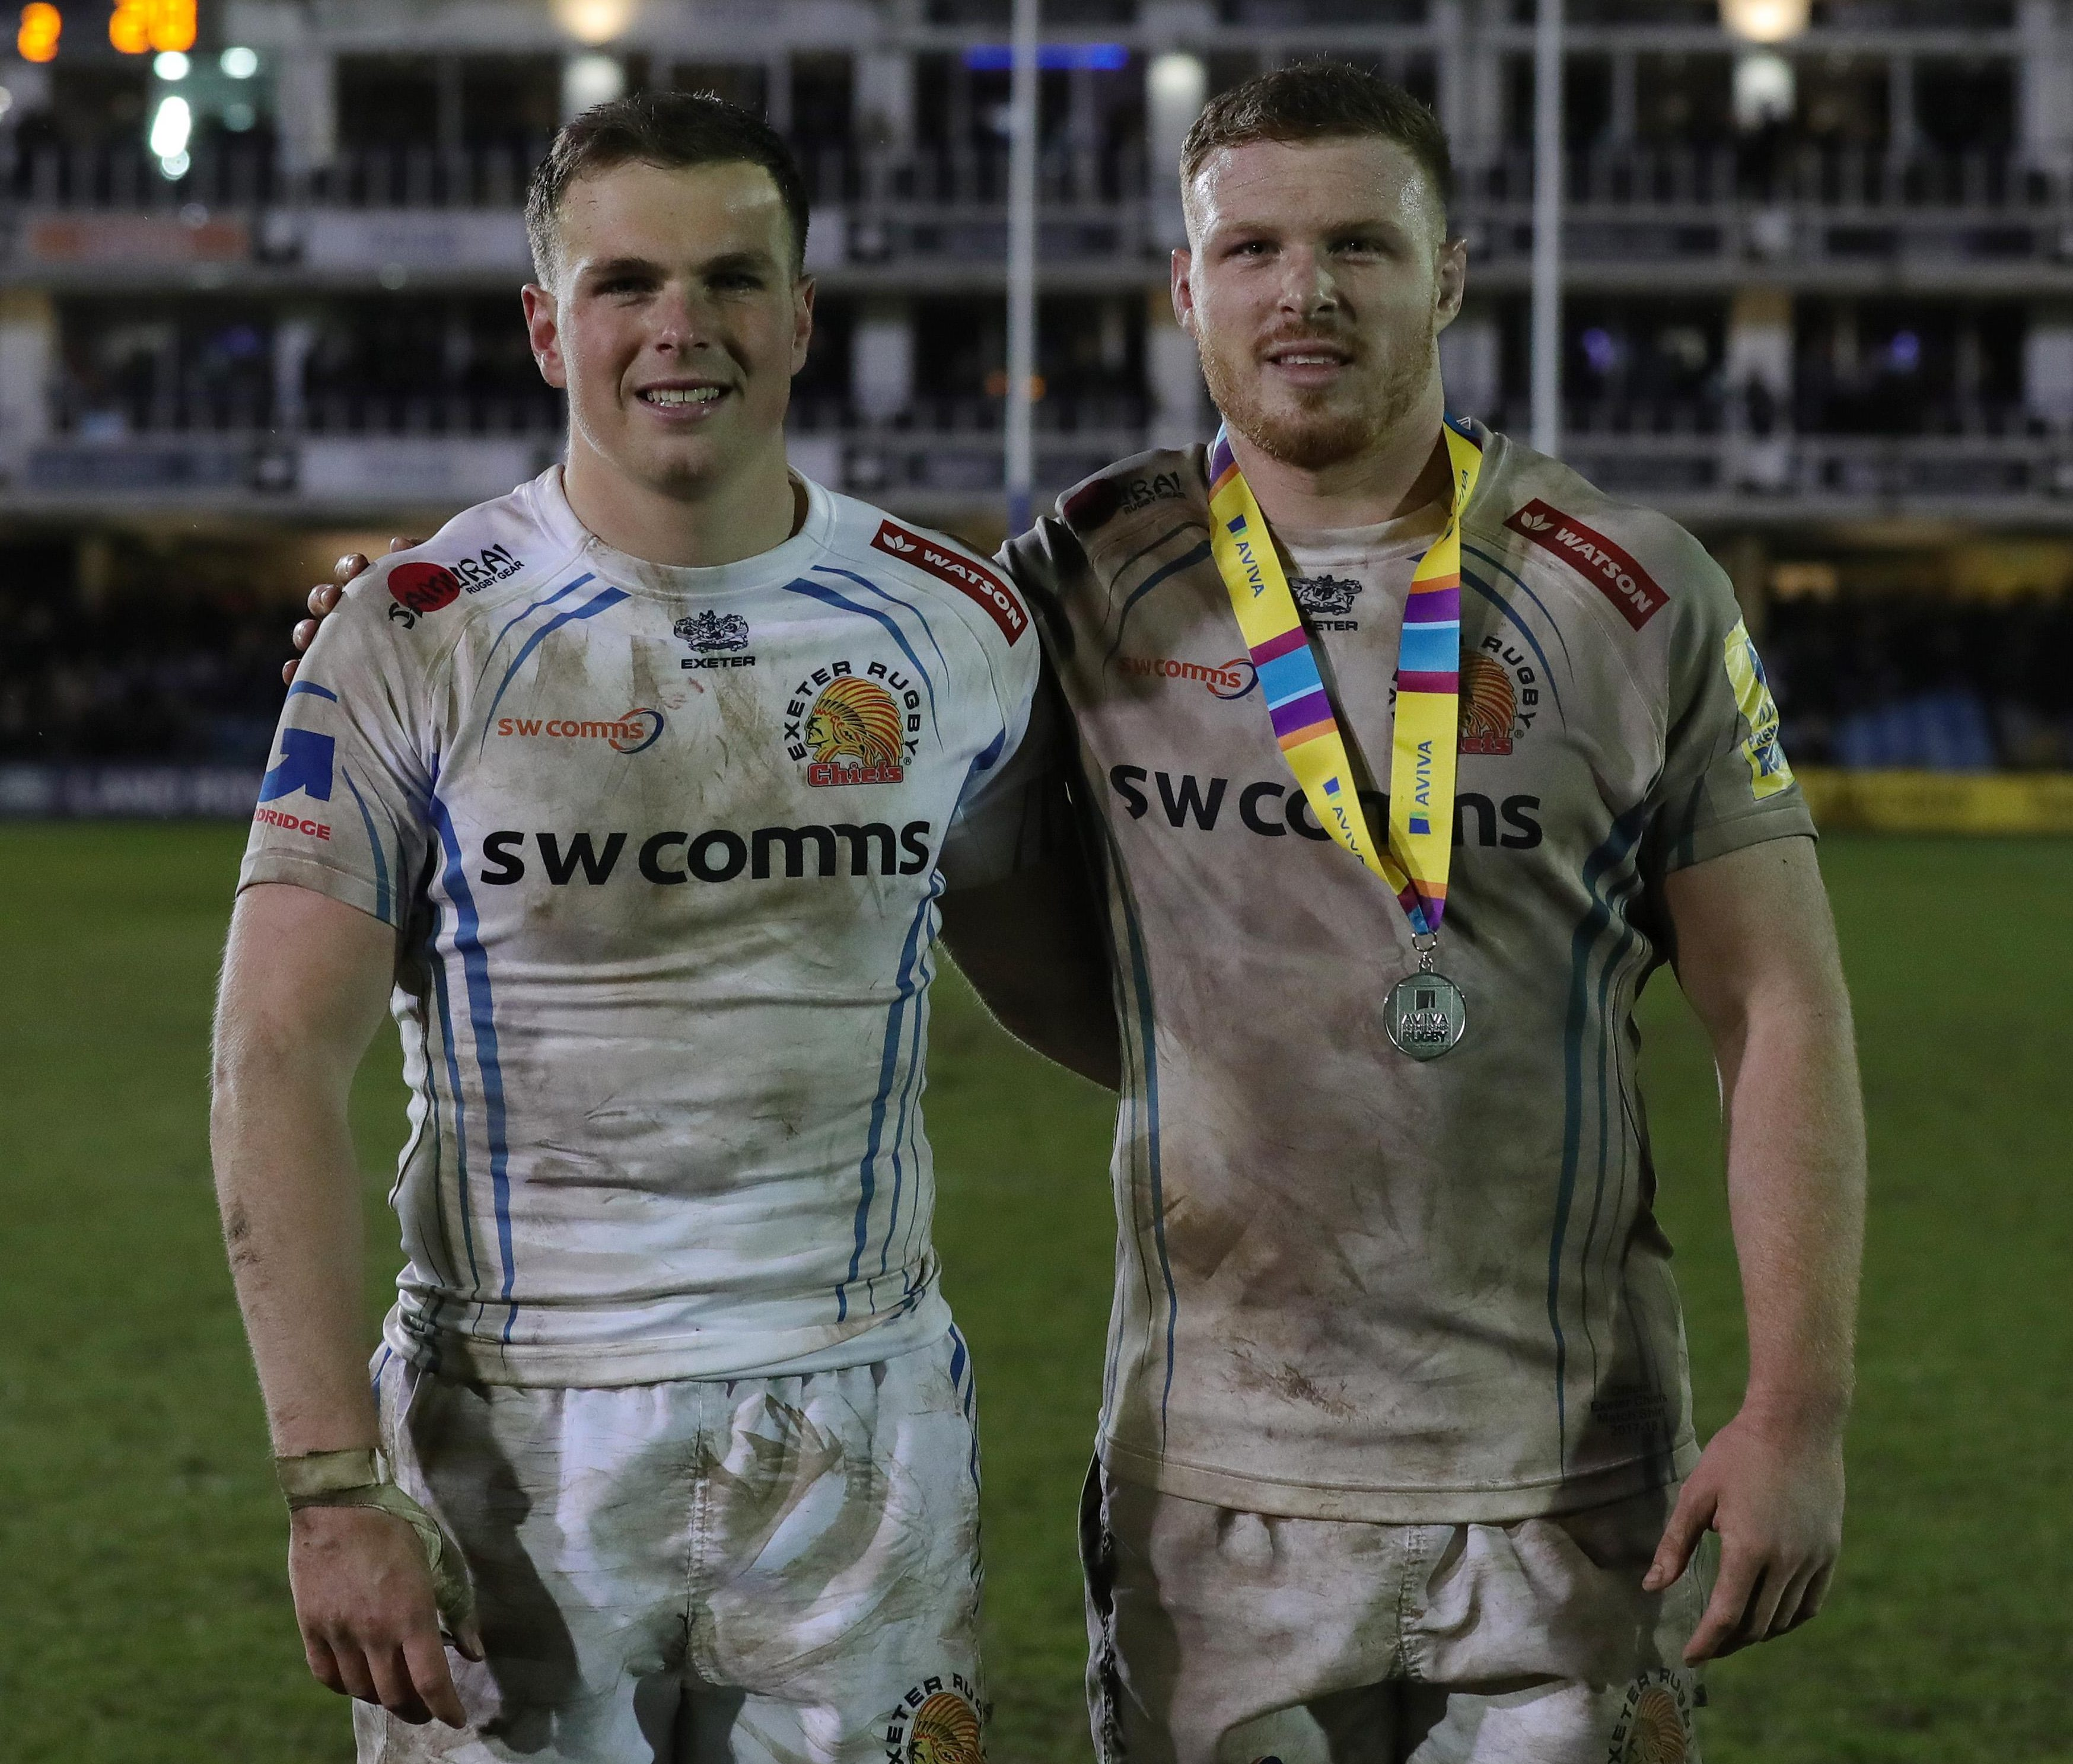 Exeter stars Sam and Joe Simmonds aim to top the season off in style by beating Saracens and the Vunipolas at Twickenham